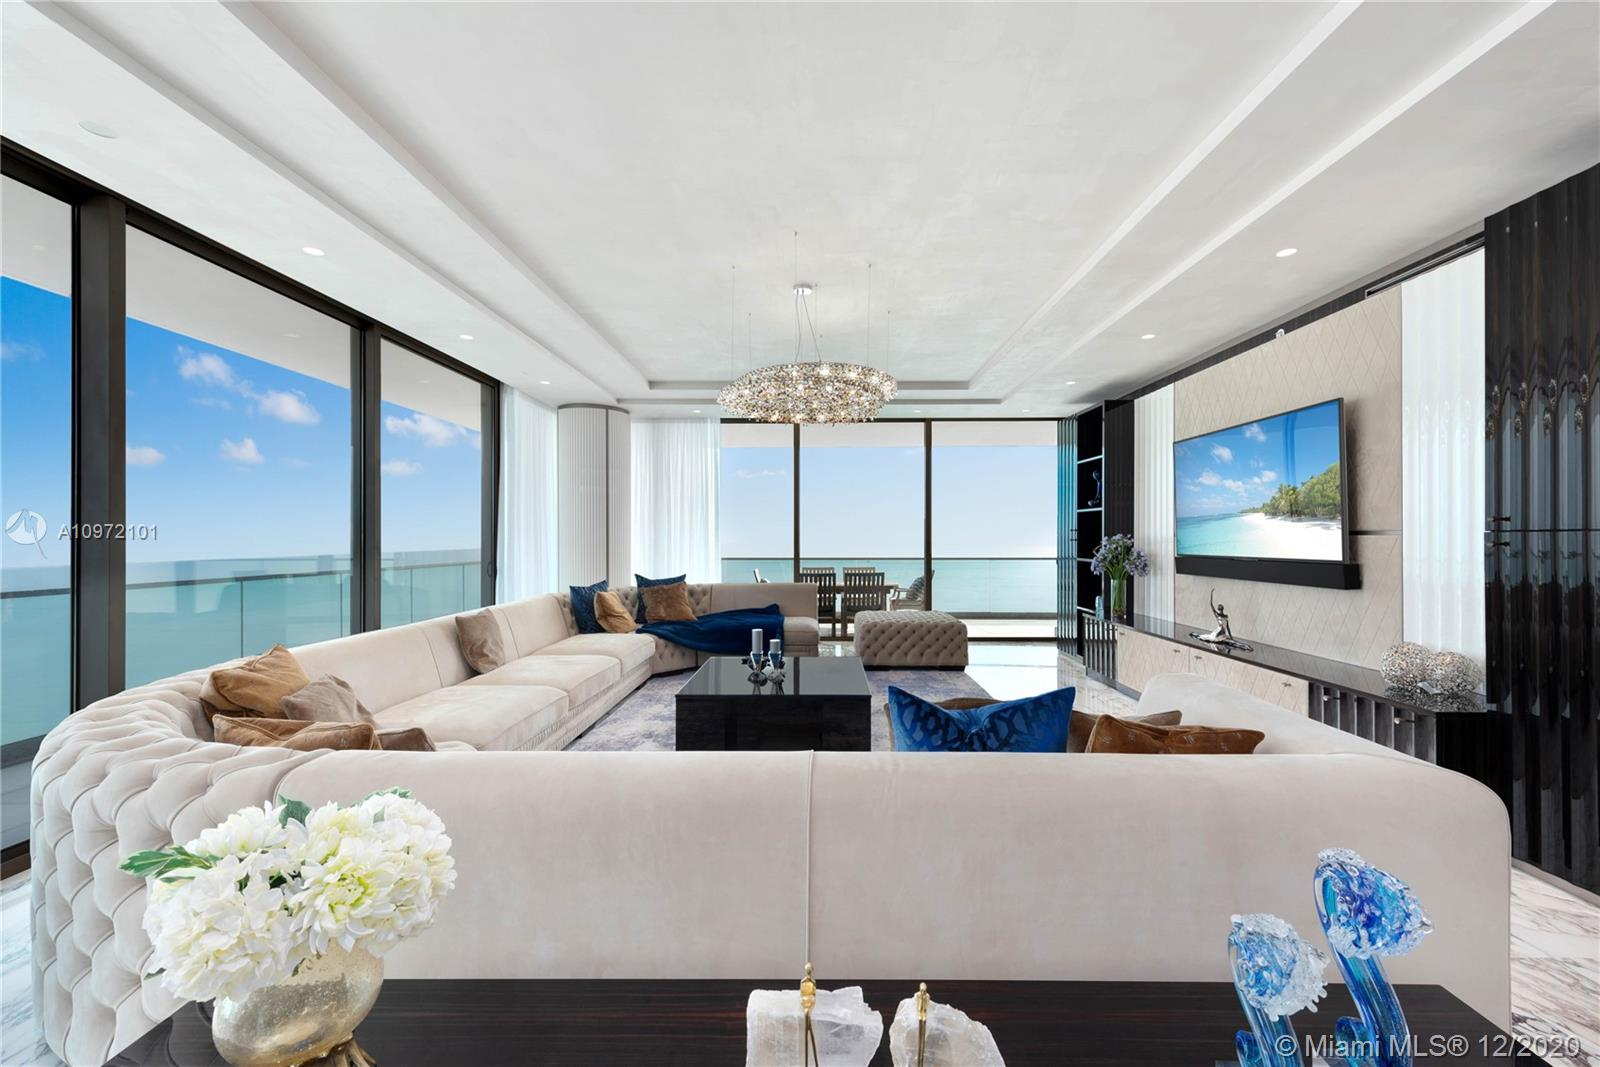 10203 Collins Ave, Unit #2601 Luxury Real Estate